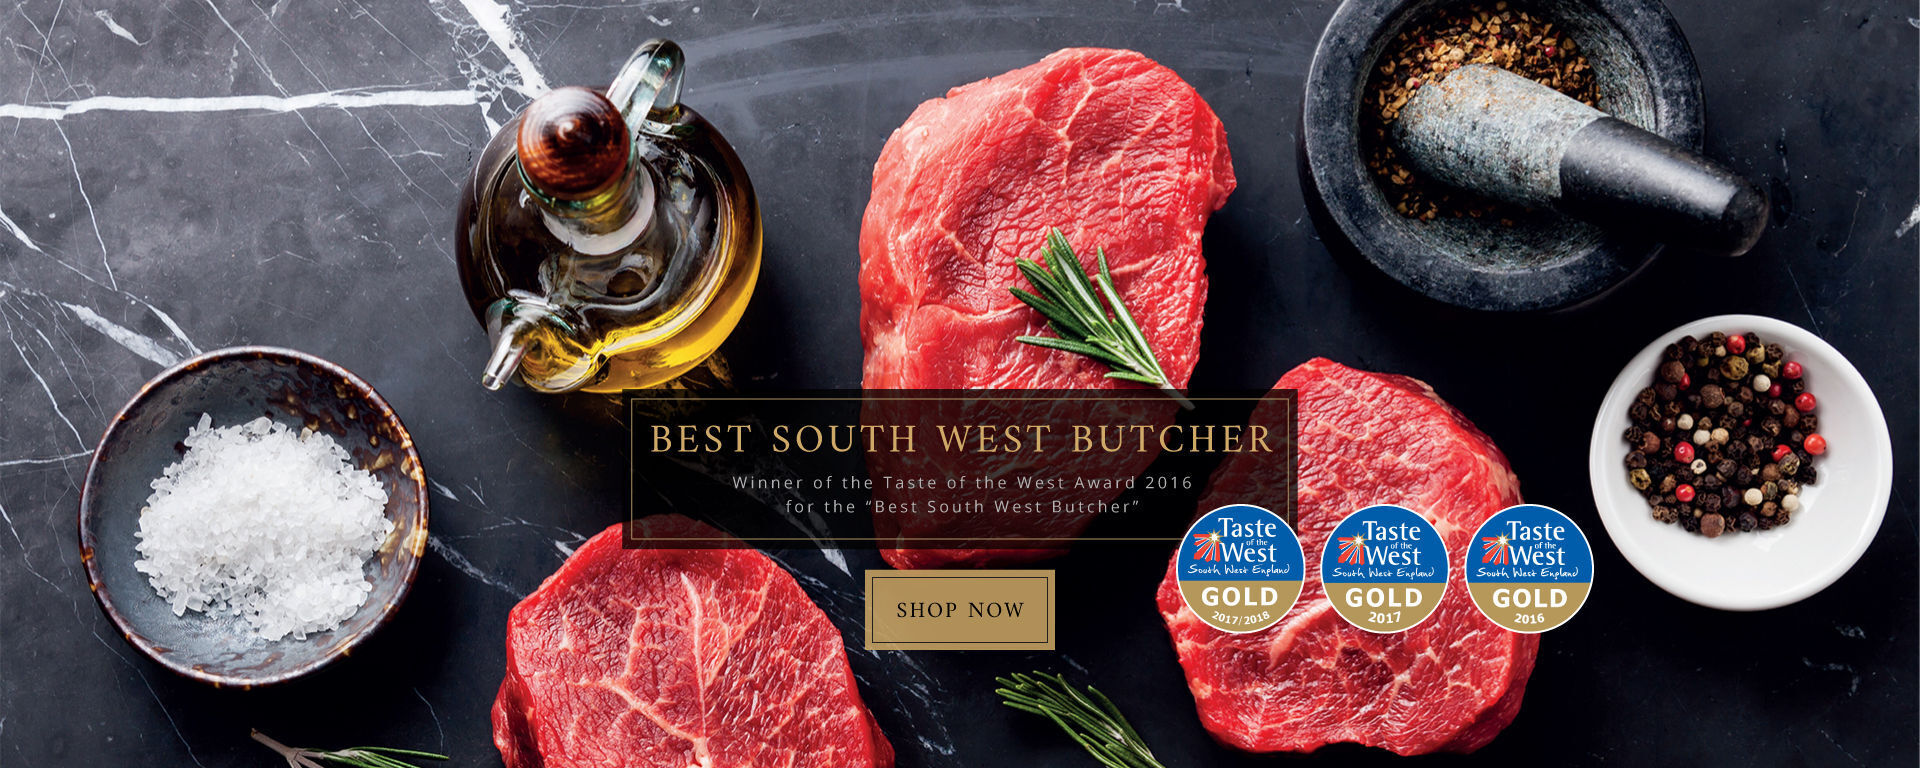 Best Butcher 2017 - Shop Our Meat Selection